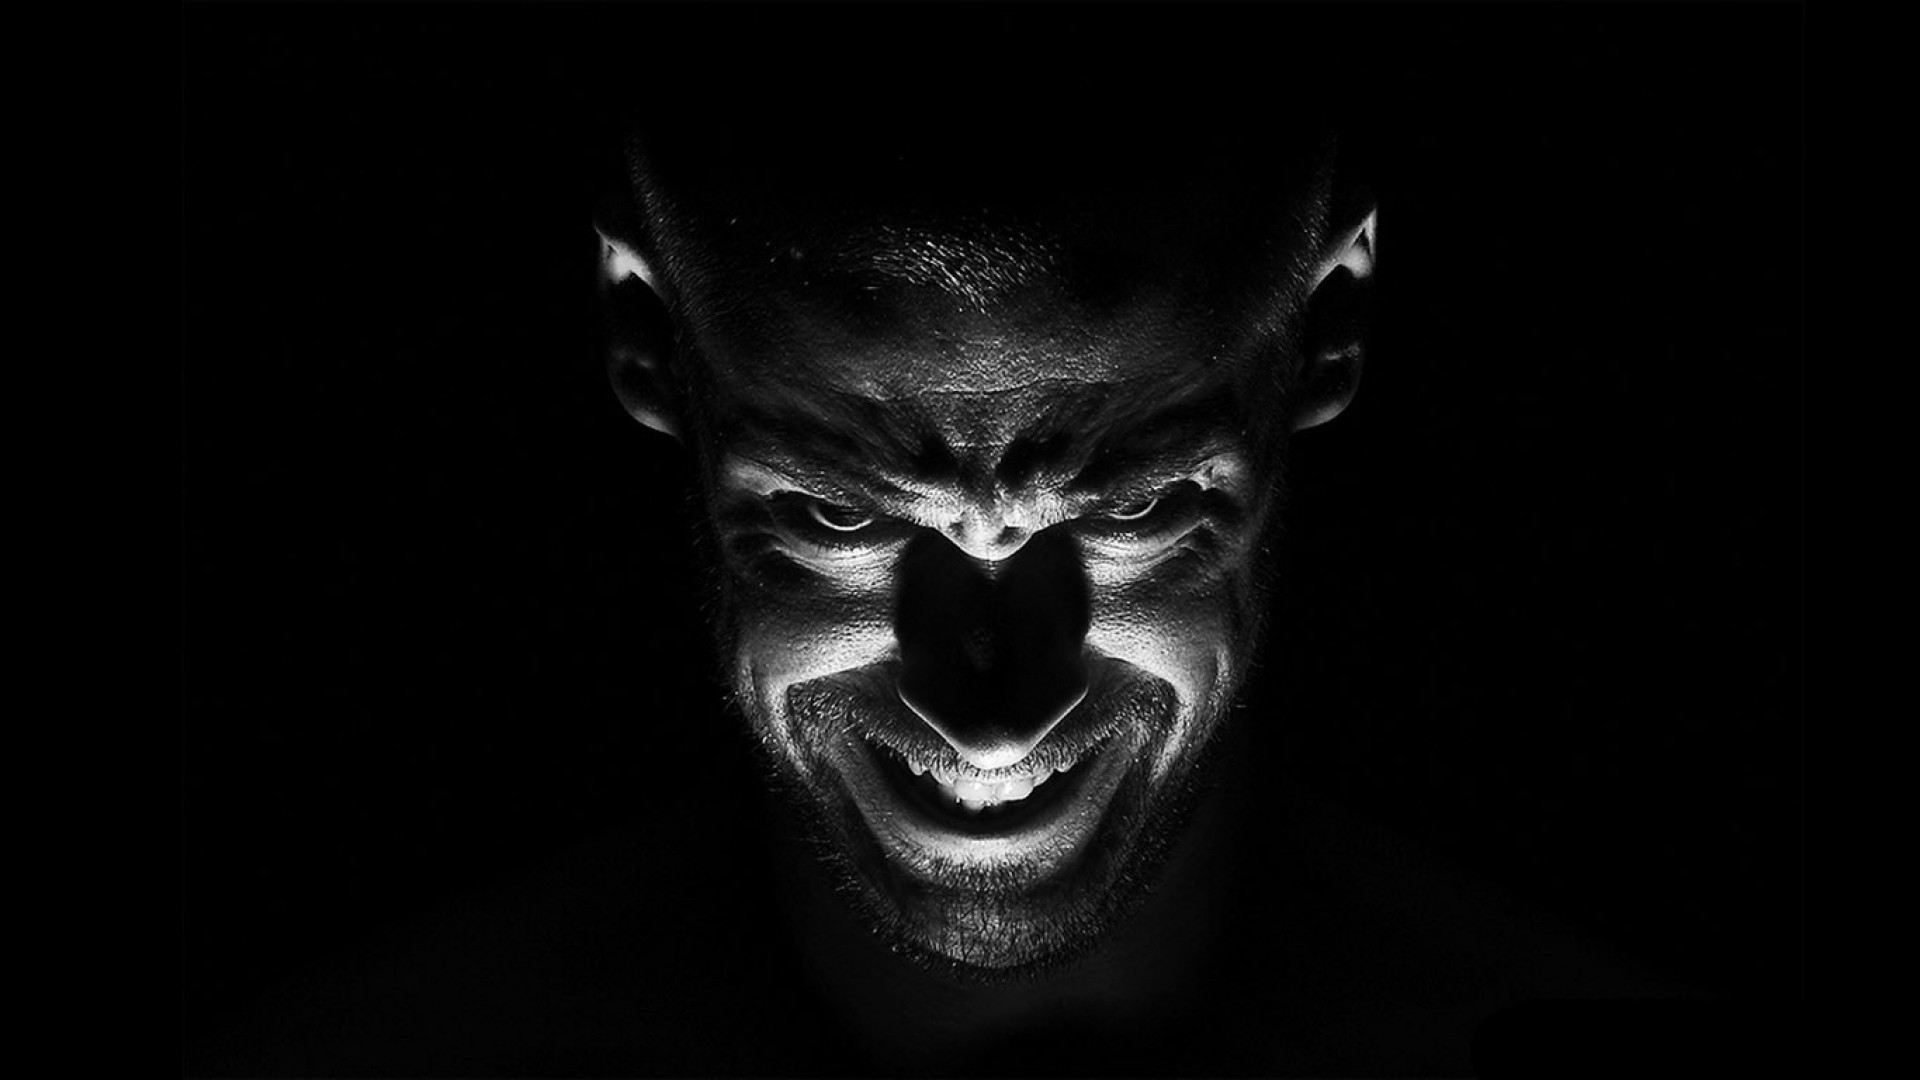 Black and White Demon Portrait – Photography Wallpapers on Inspirationde